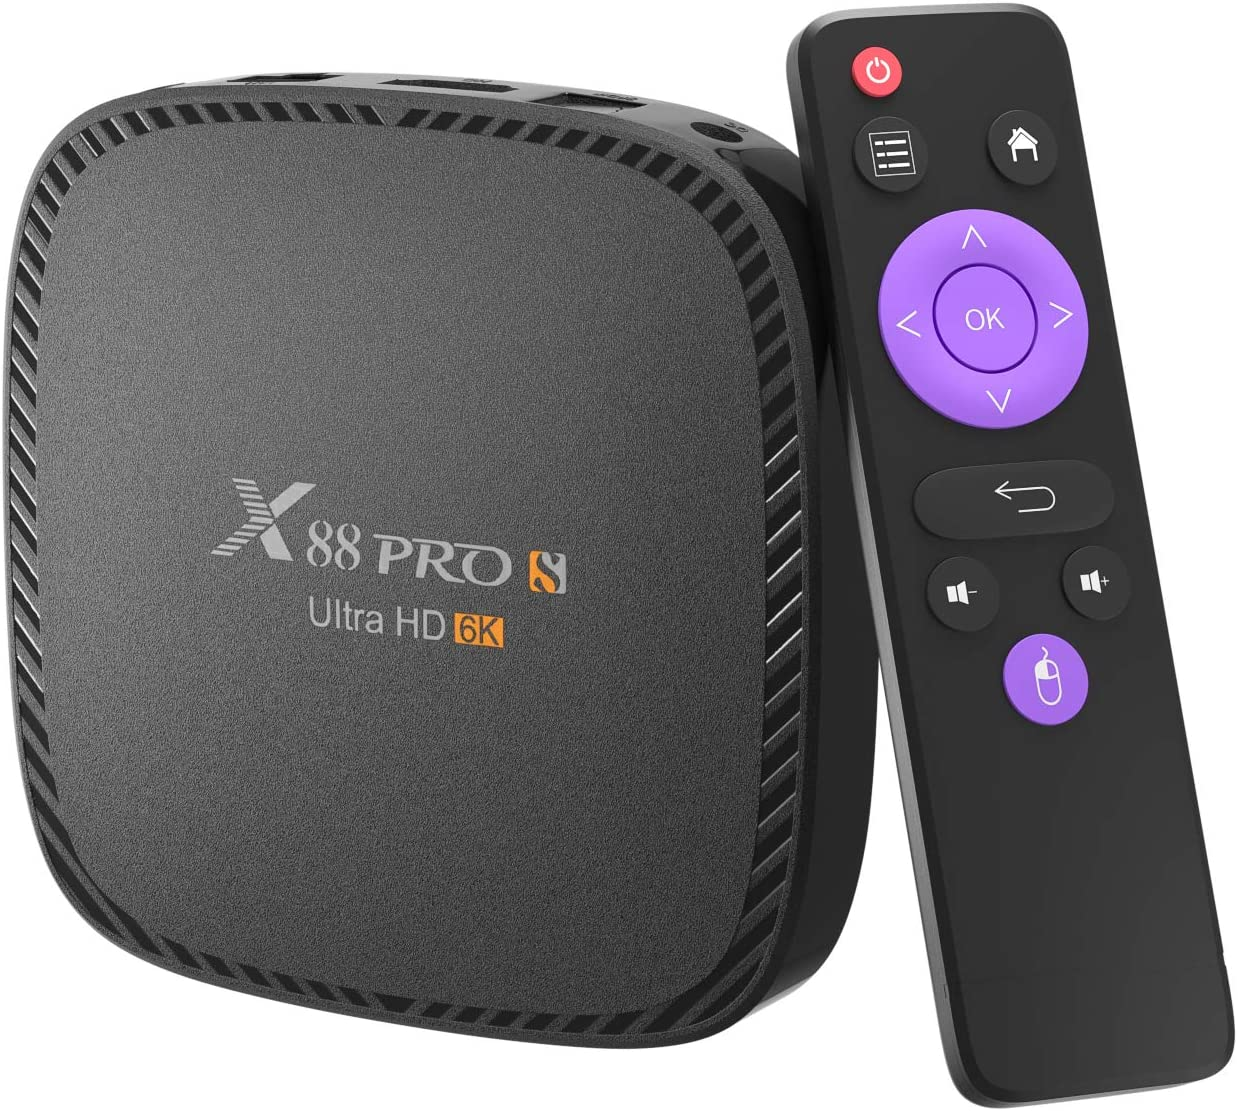 Android 10.0 TV Box X88 PRO S 4GB RAM 128 ROM Allwinner H616 Quad-Core 64-bit Android Box with 2.4G/5G Dual WiFi 10/100M Ethernet, Support H.265/3D/6K Ultra HD/BT 5.0/HDMI 2.0 Smart TV Box